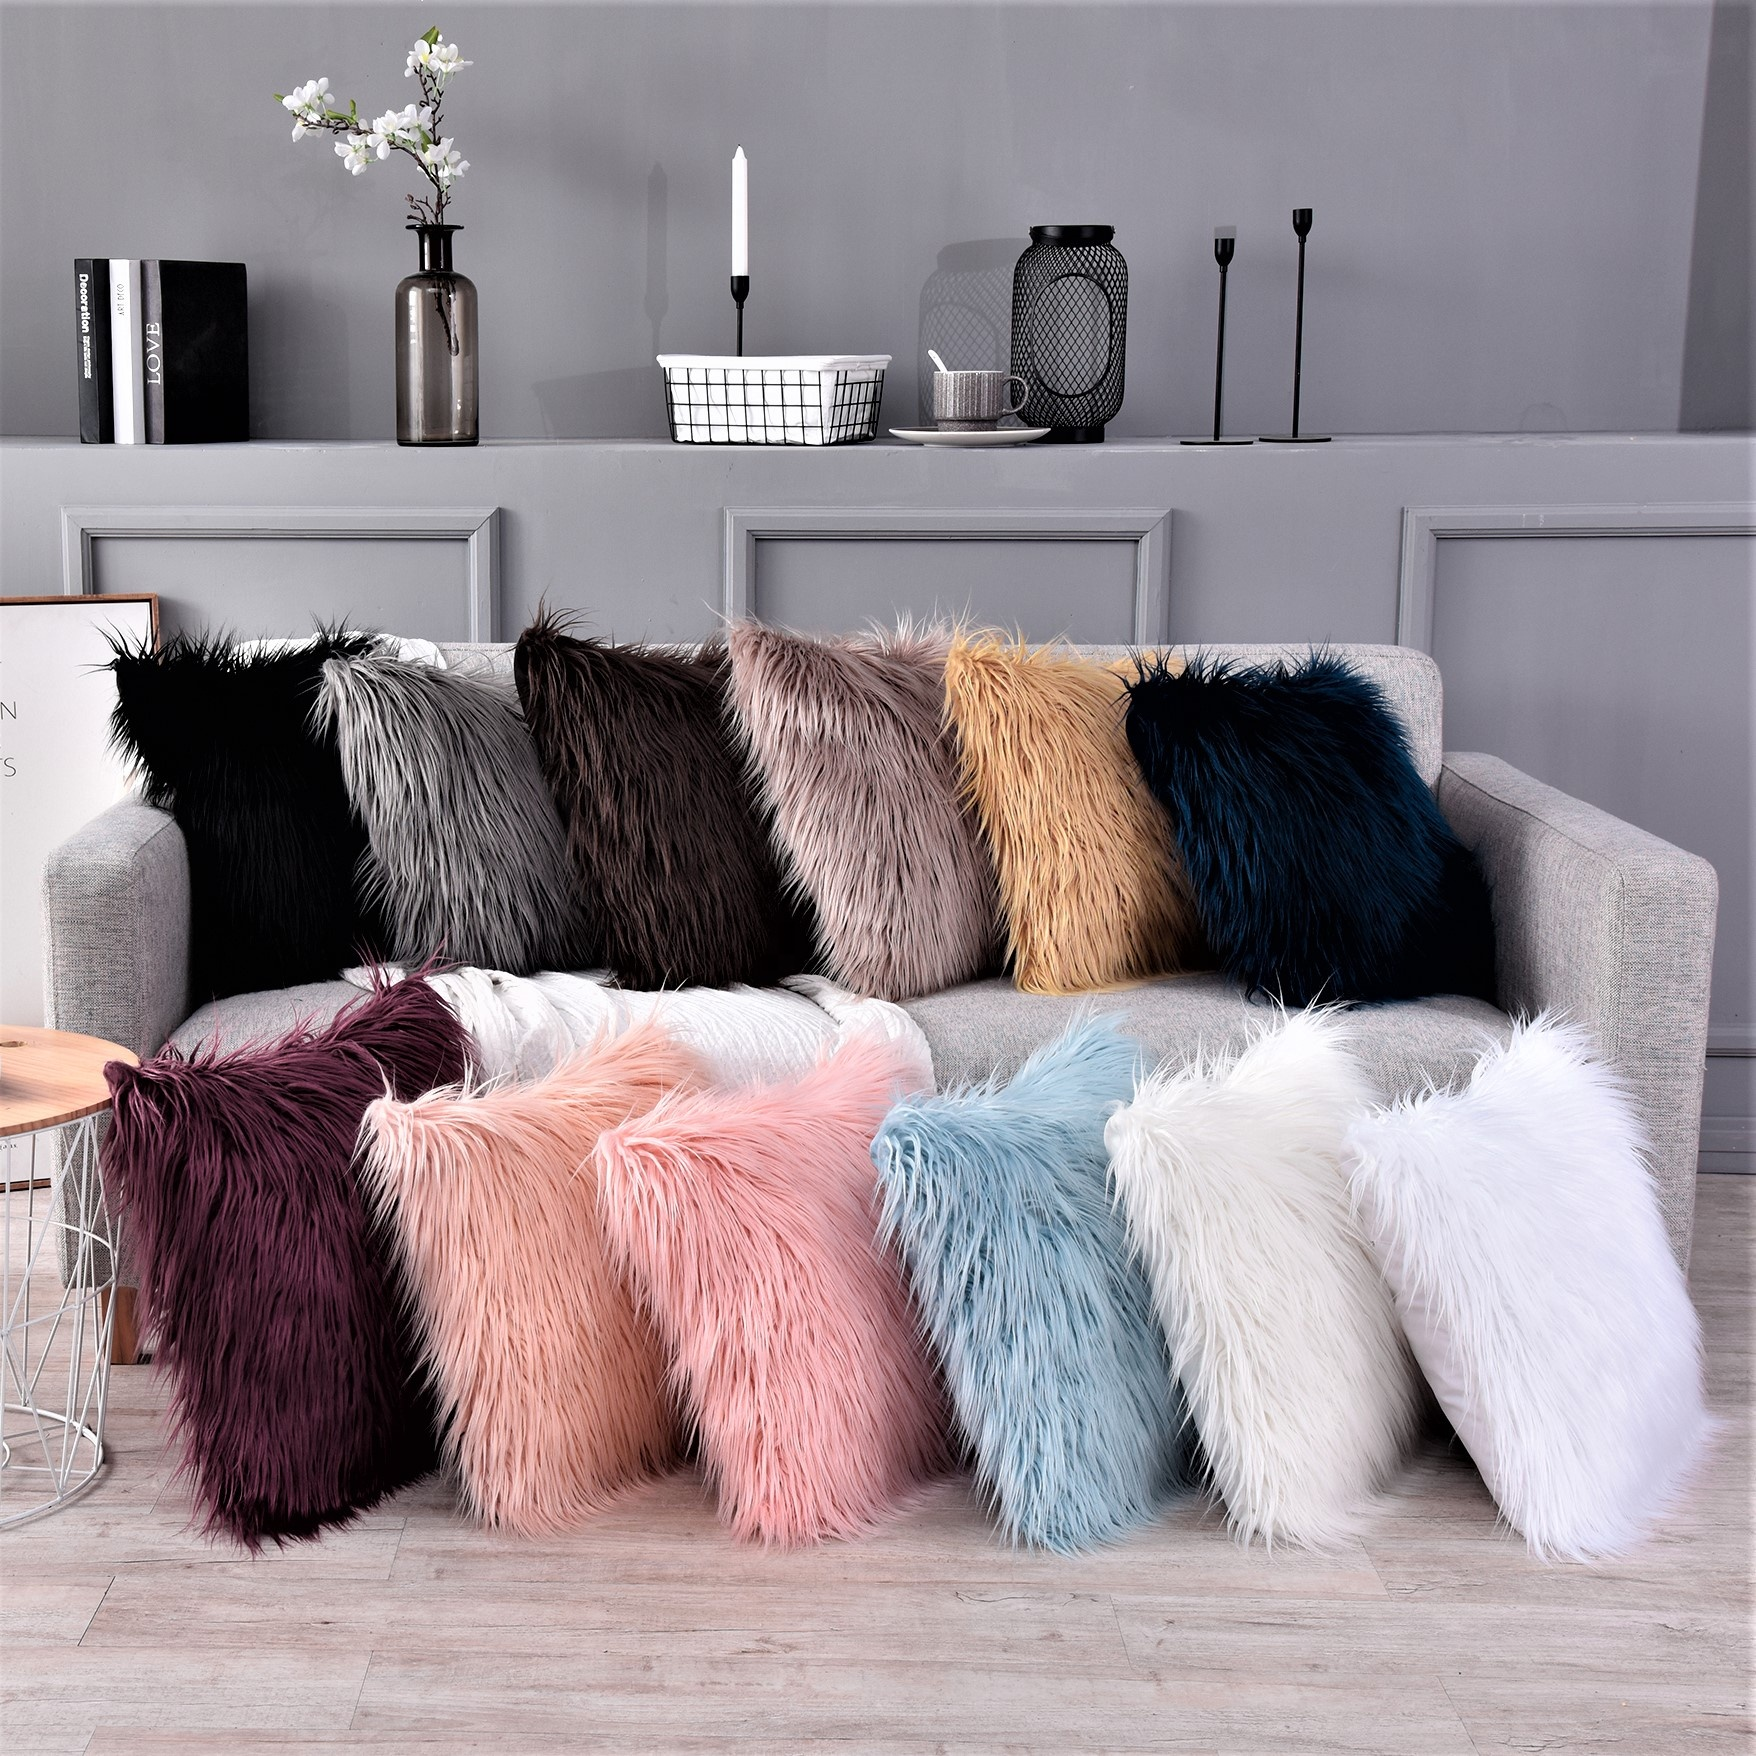 china factory home decor fur throw pillow cover shaggy sheepskin faux fur pillow cases buy home decor fur throw pillow cover fluffy shaggy sheepskin pillow cases fluffy faux fur pillow for bedding product